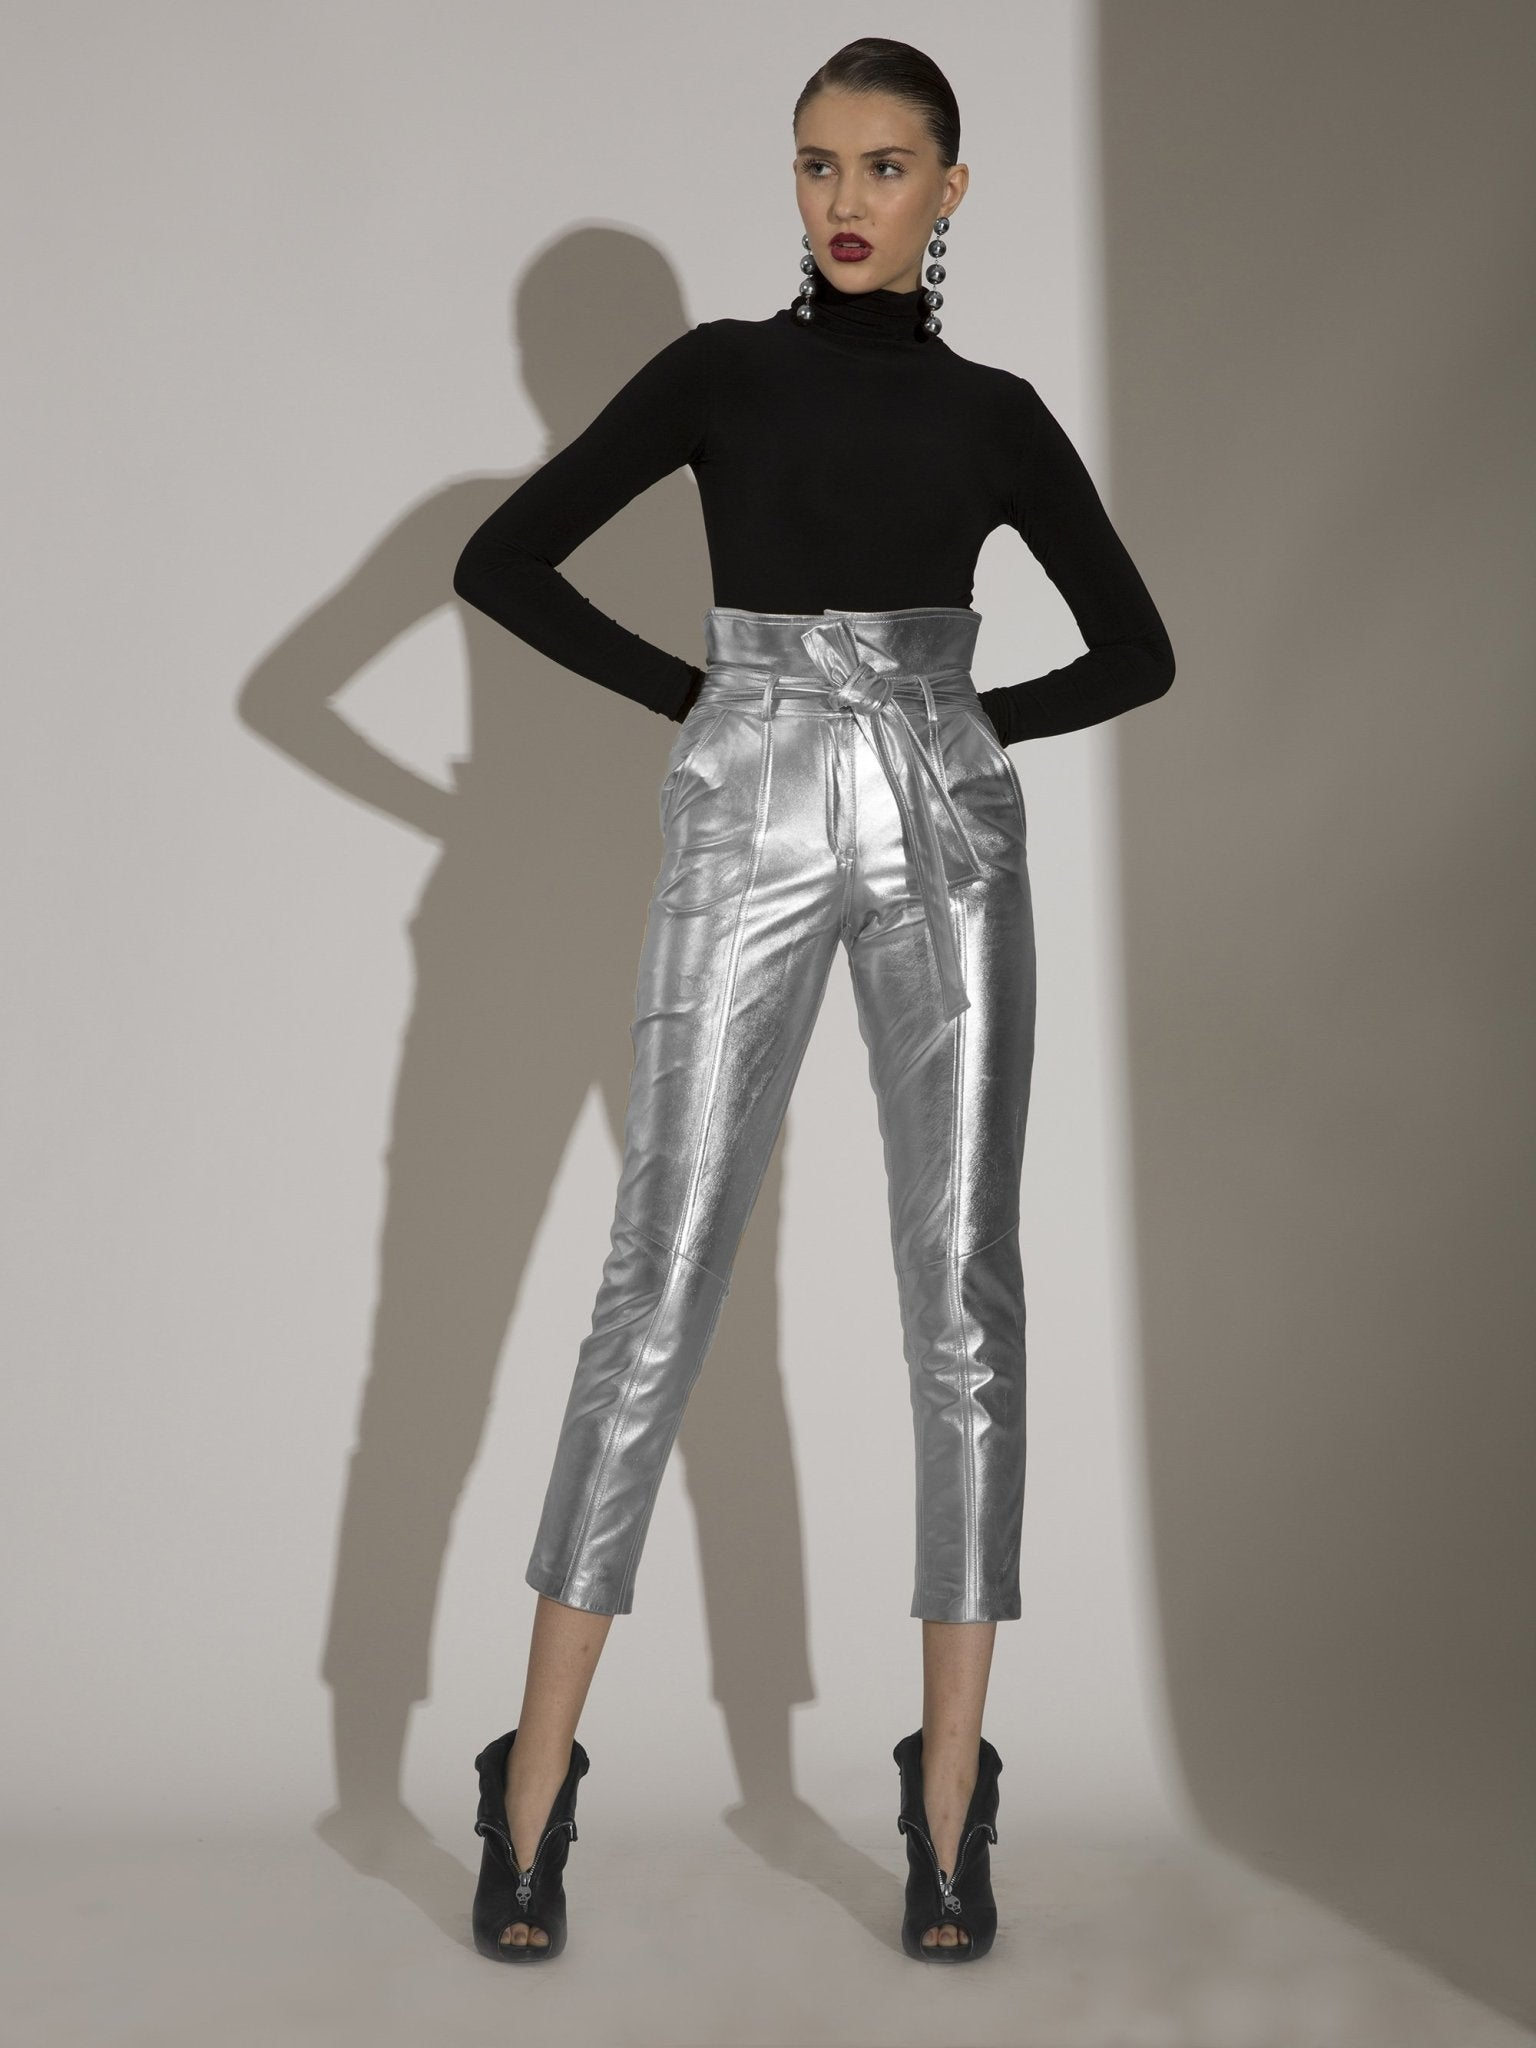 Leather High-Waisted Pants - The Clothing LoungePEARL AND RUBIES